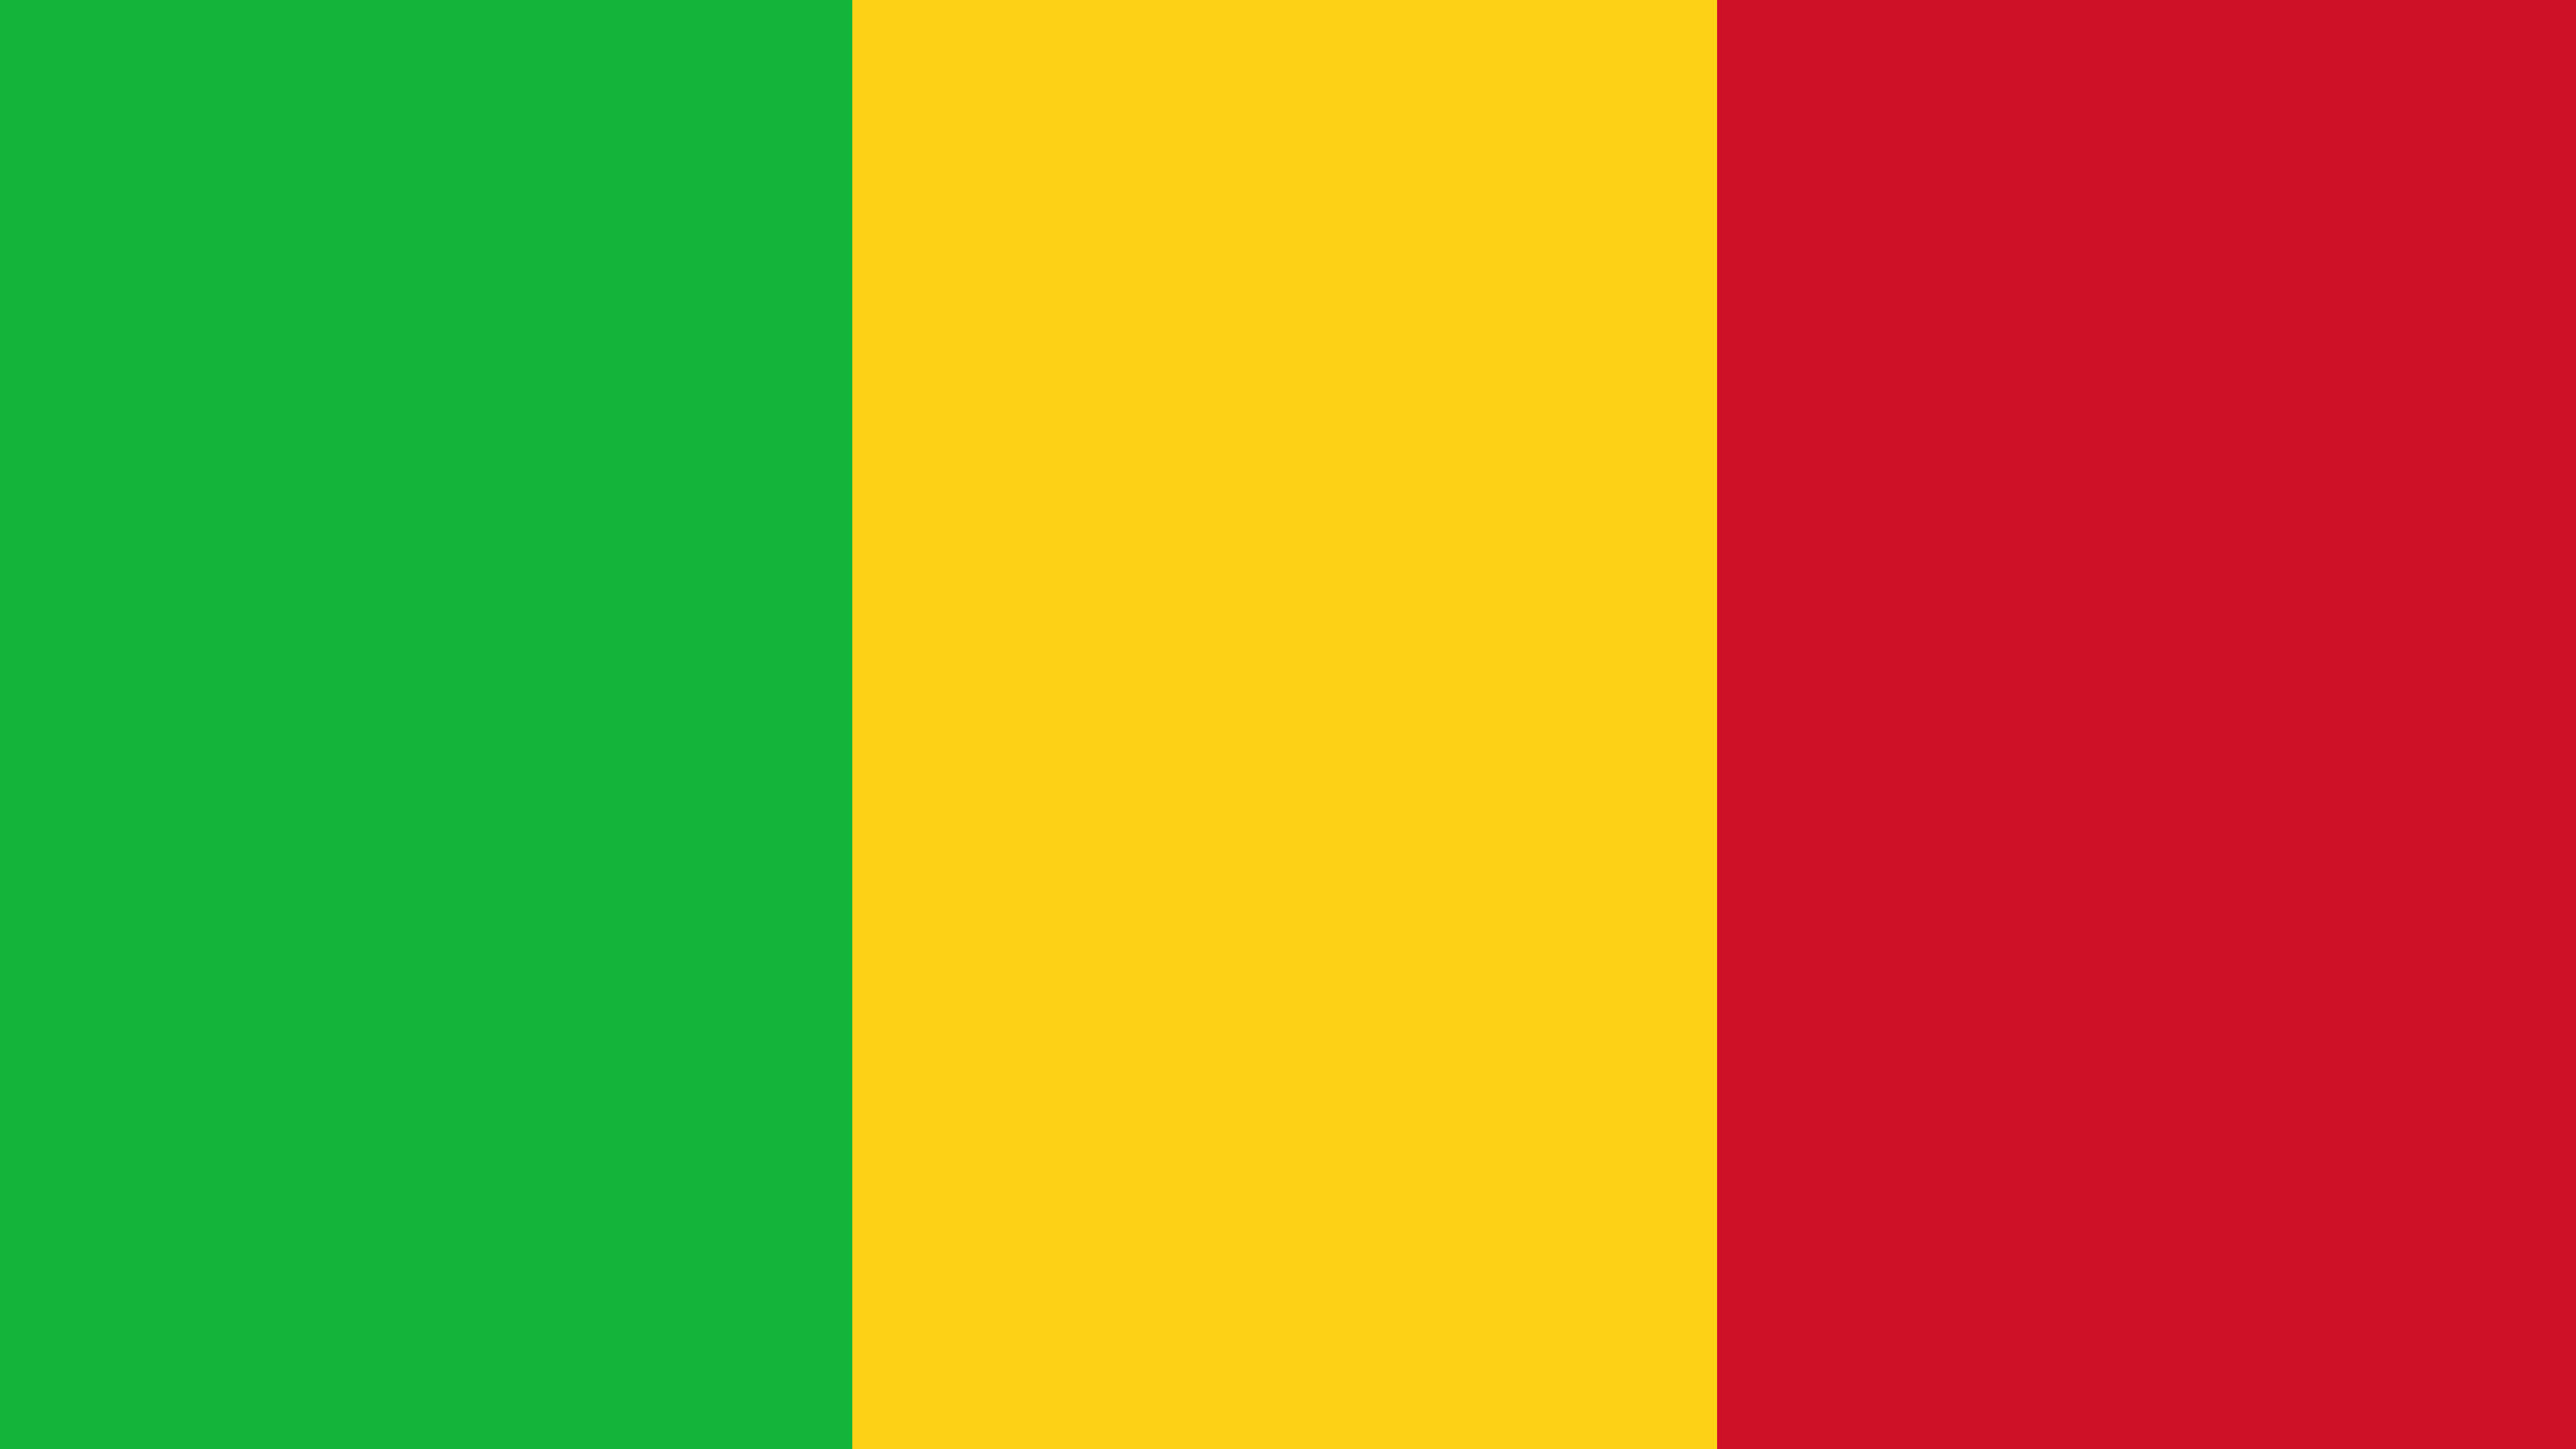 mali flag uhd 4k wallpaper